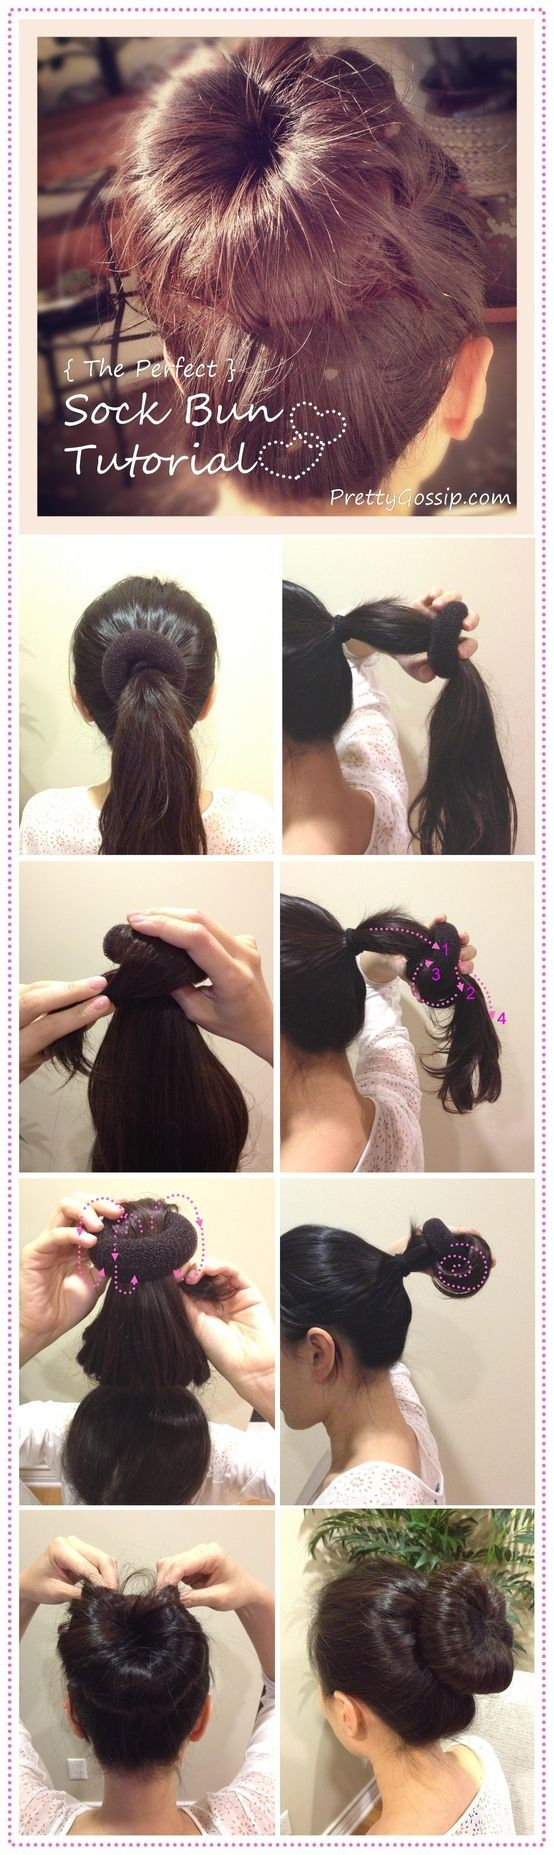 Seriously!? Why has no one ever explained it this way before? This girl has an entire extra step that makes the sock bun actually seem possible for long hair. @ AbeystyleAbeystyleg (554×1855)